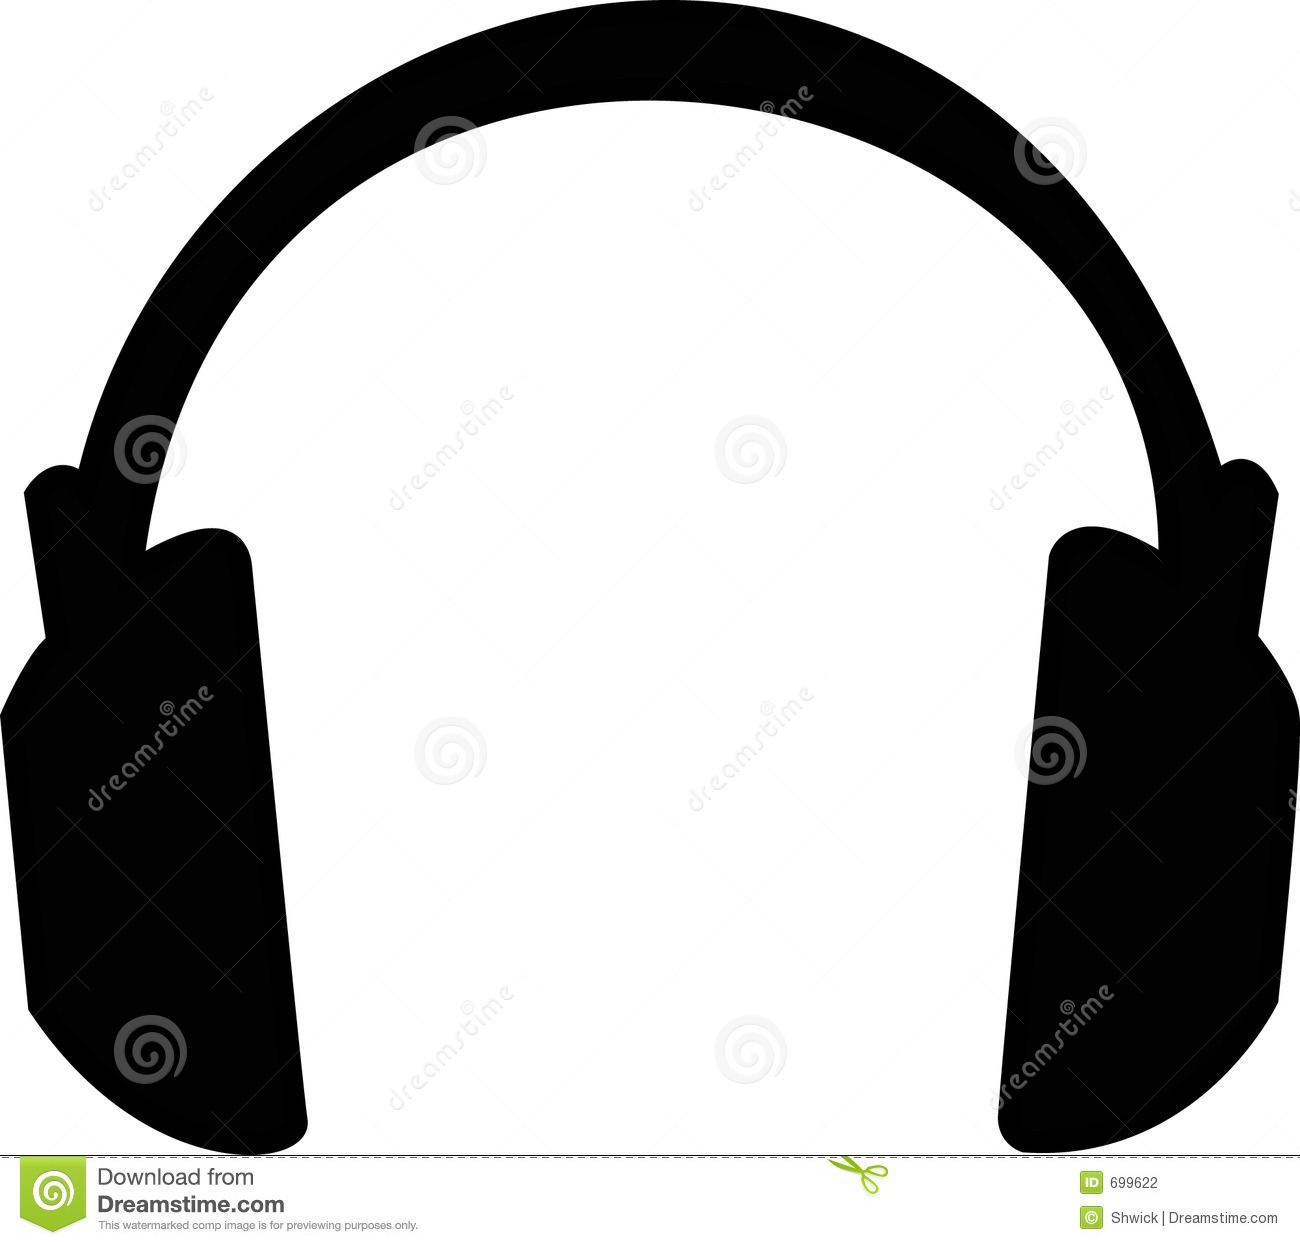 Large black headphones illustration - large headphones that cover ears ...